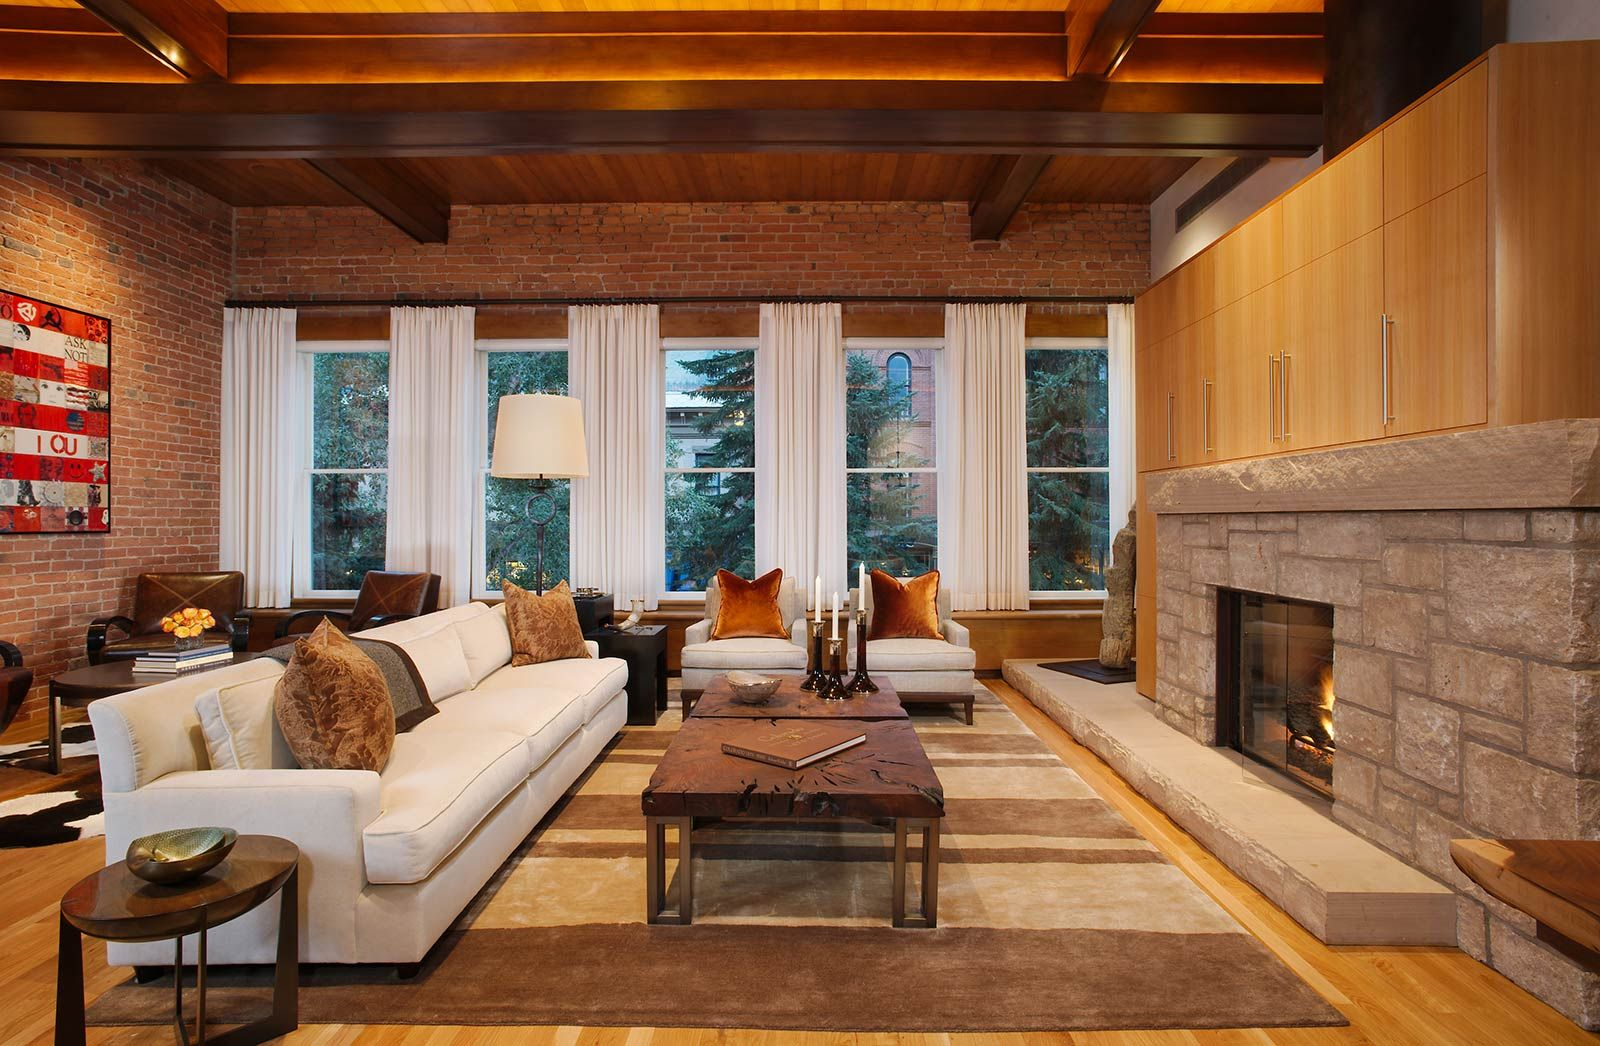 Bill poss architecture aspen downtown residence living - How to bill for interior design services ...